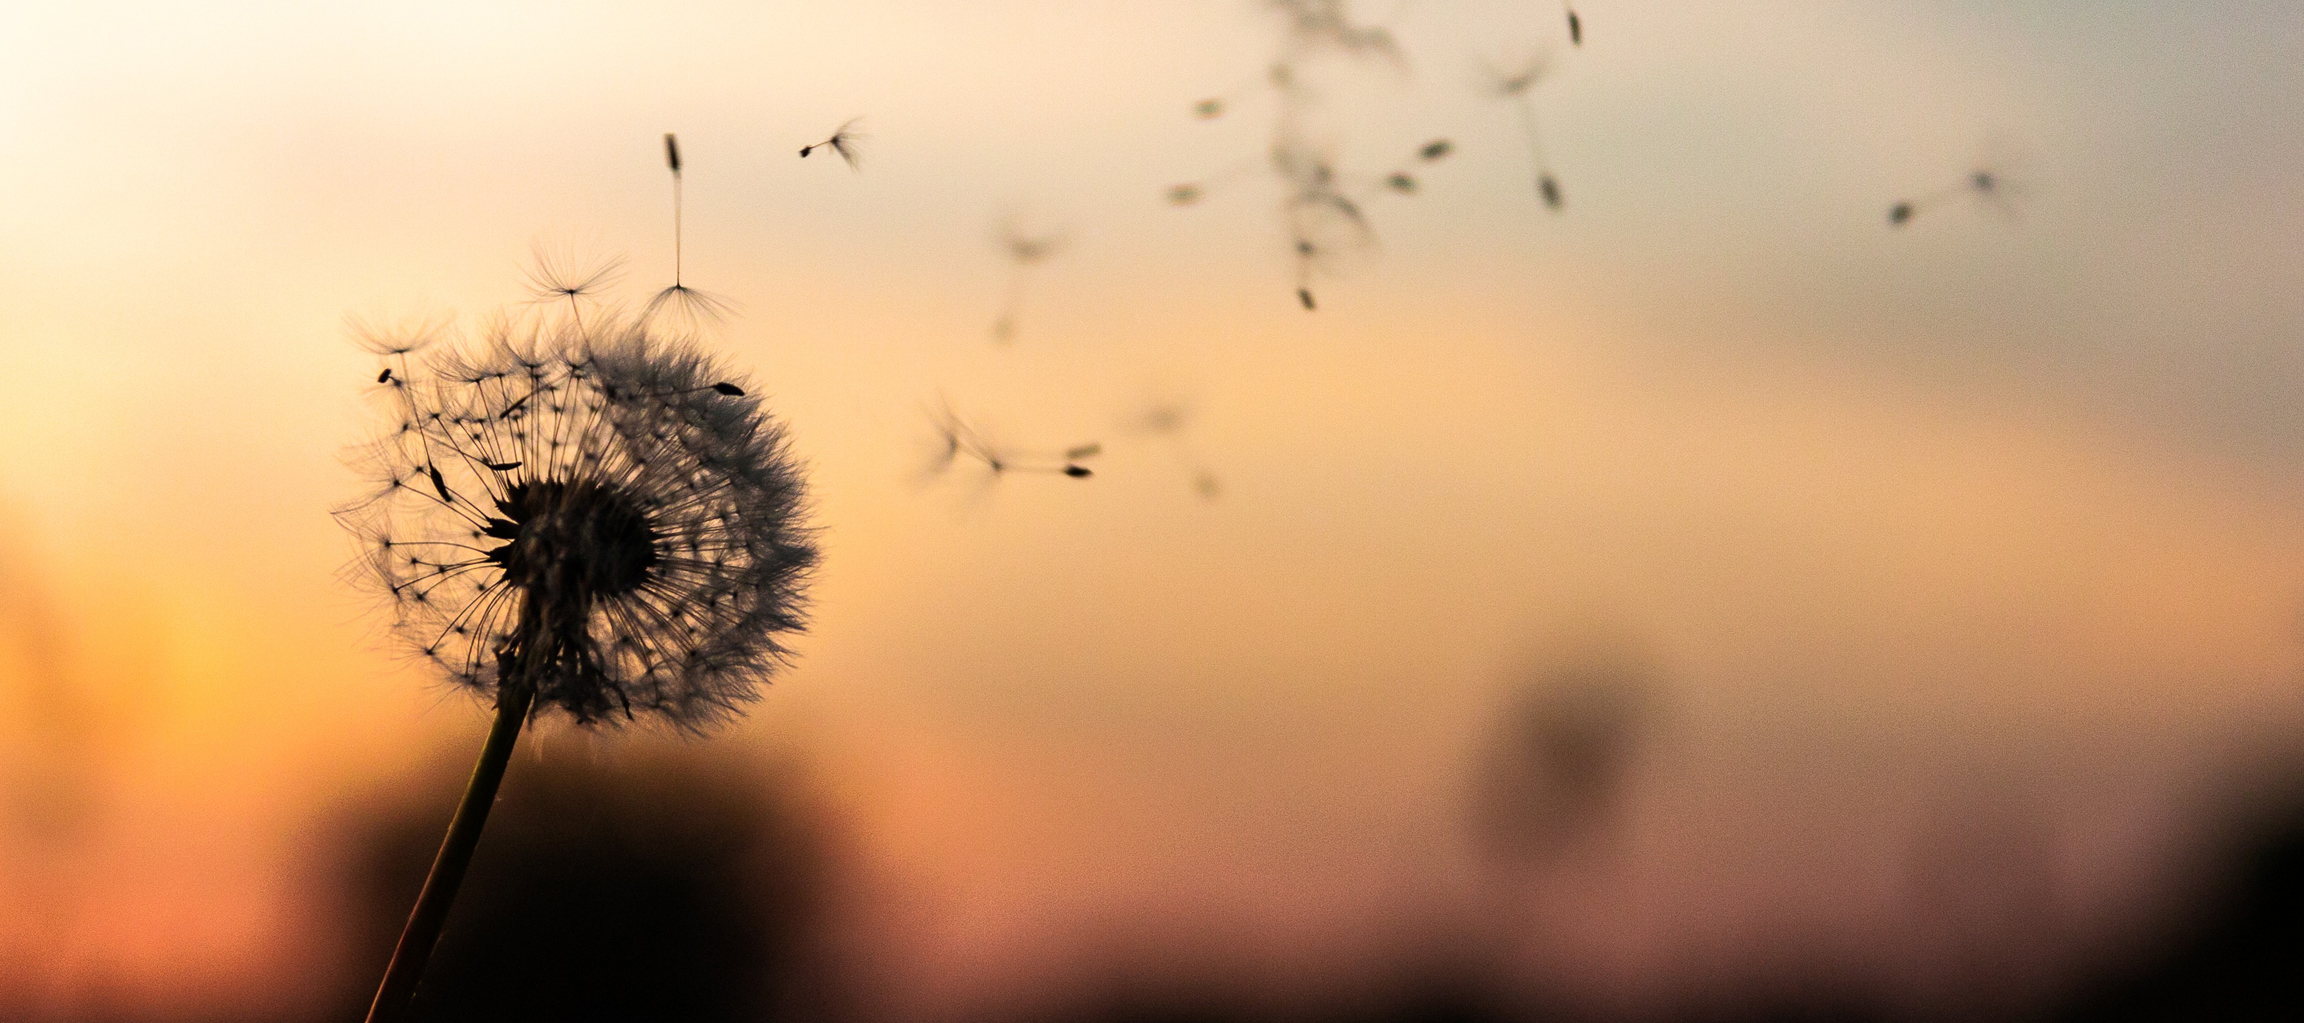 The wisps of a dandelion remind us to live mindfully.